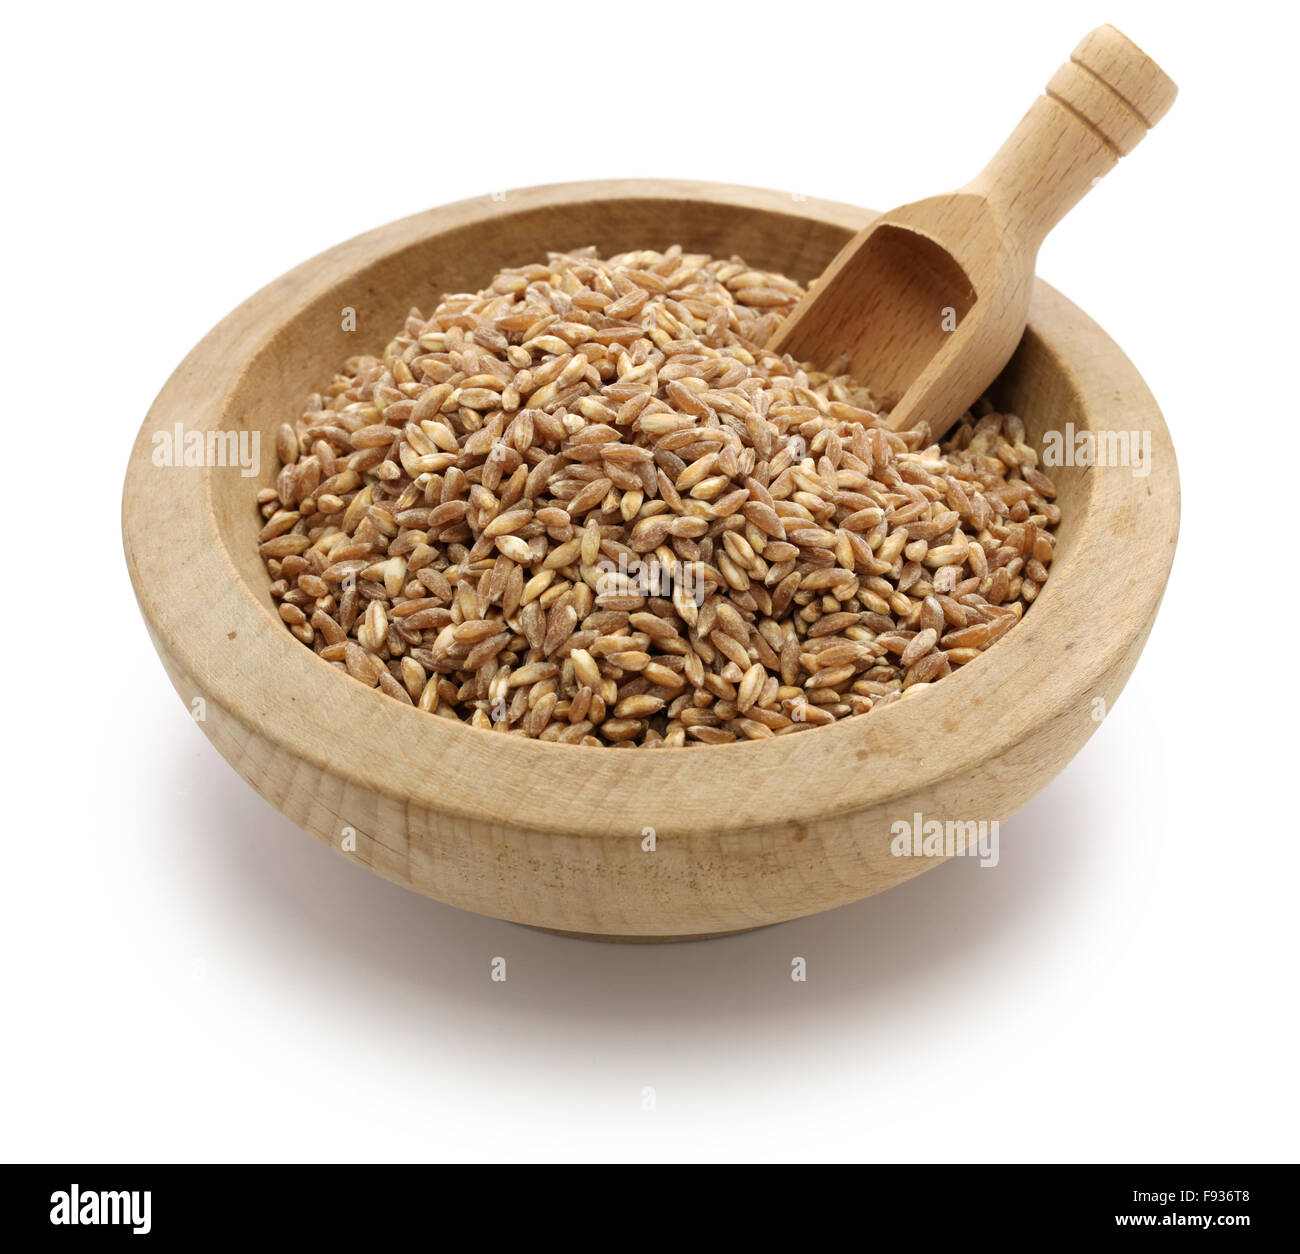 spelt, farro, primitive wheat isolated on white background - Stock Image